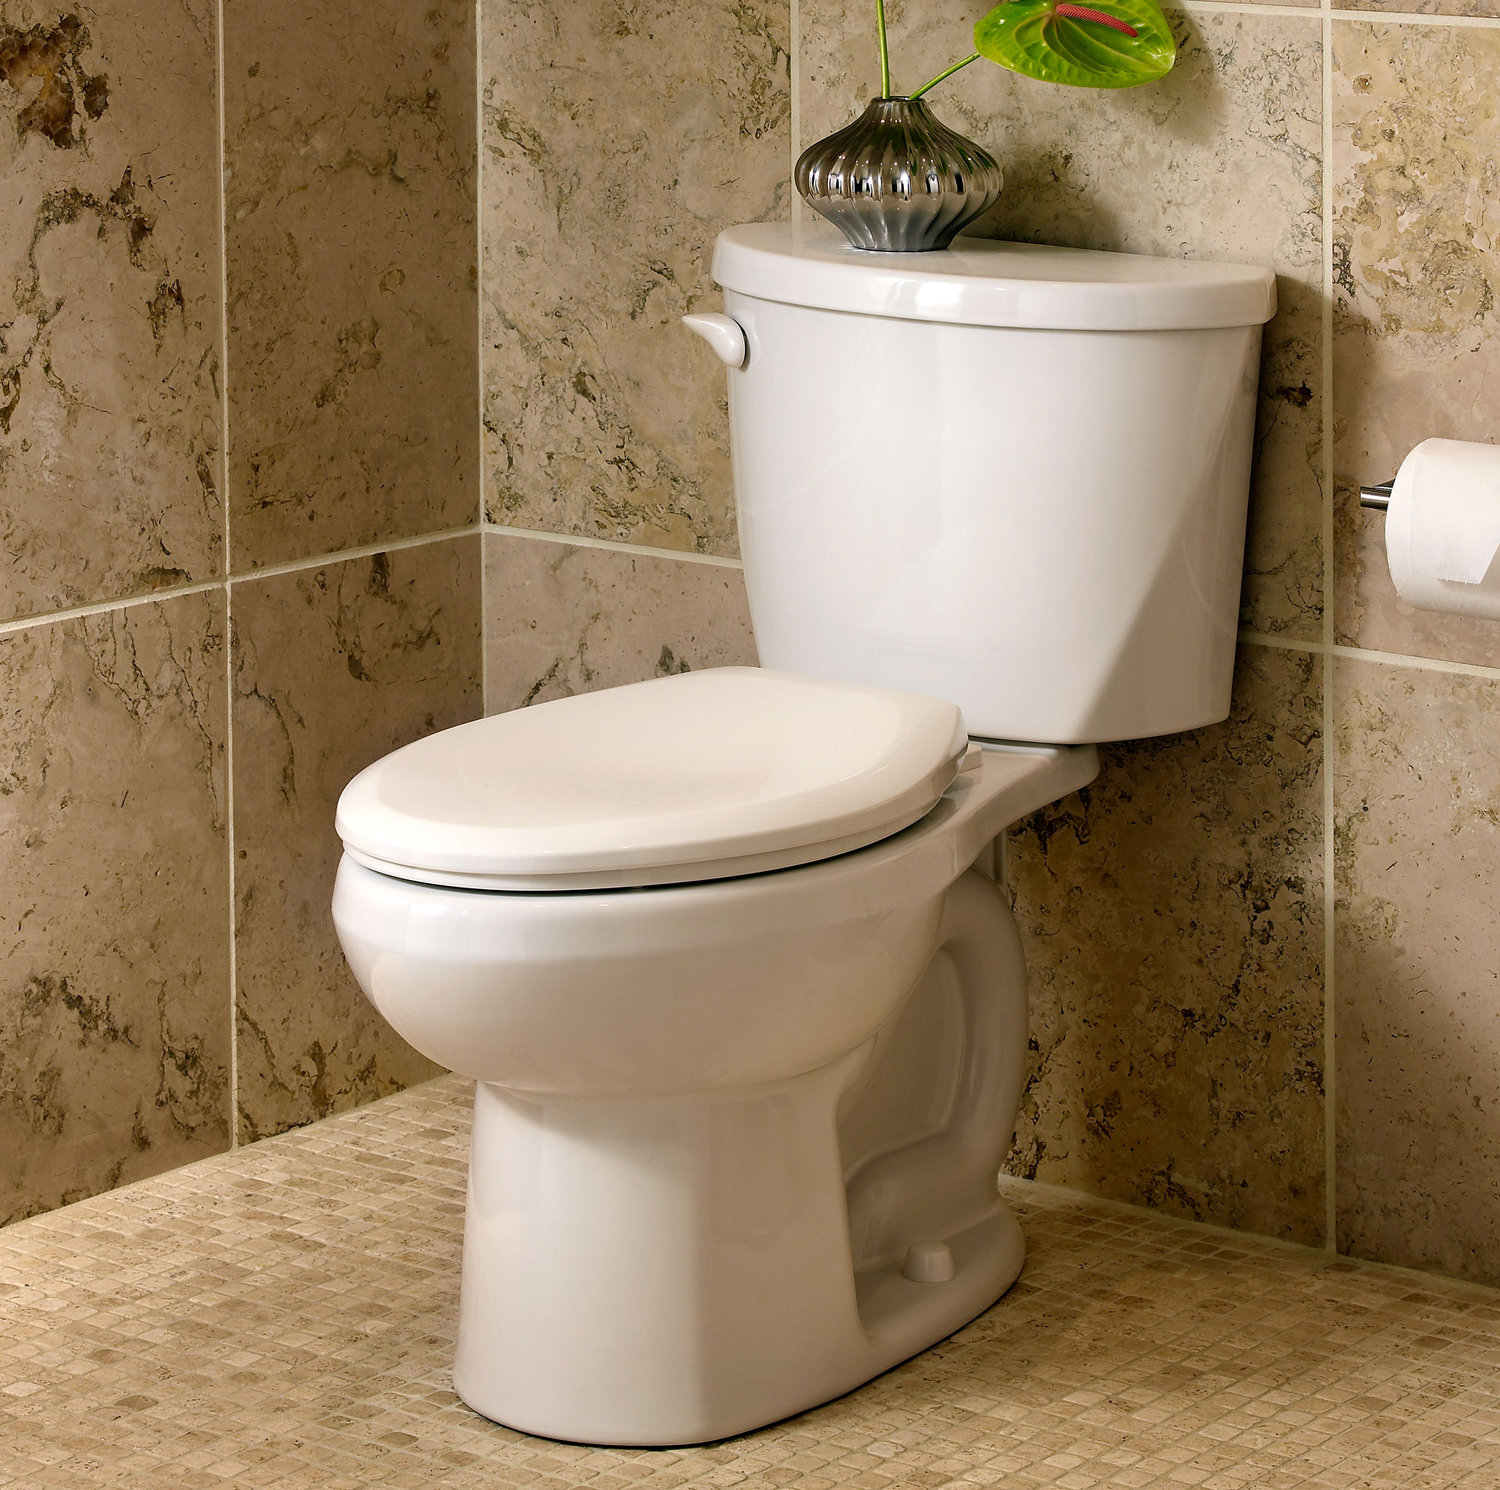 Gentil This Seat Fit With All Conventional Elongated Toilets